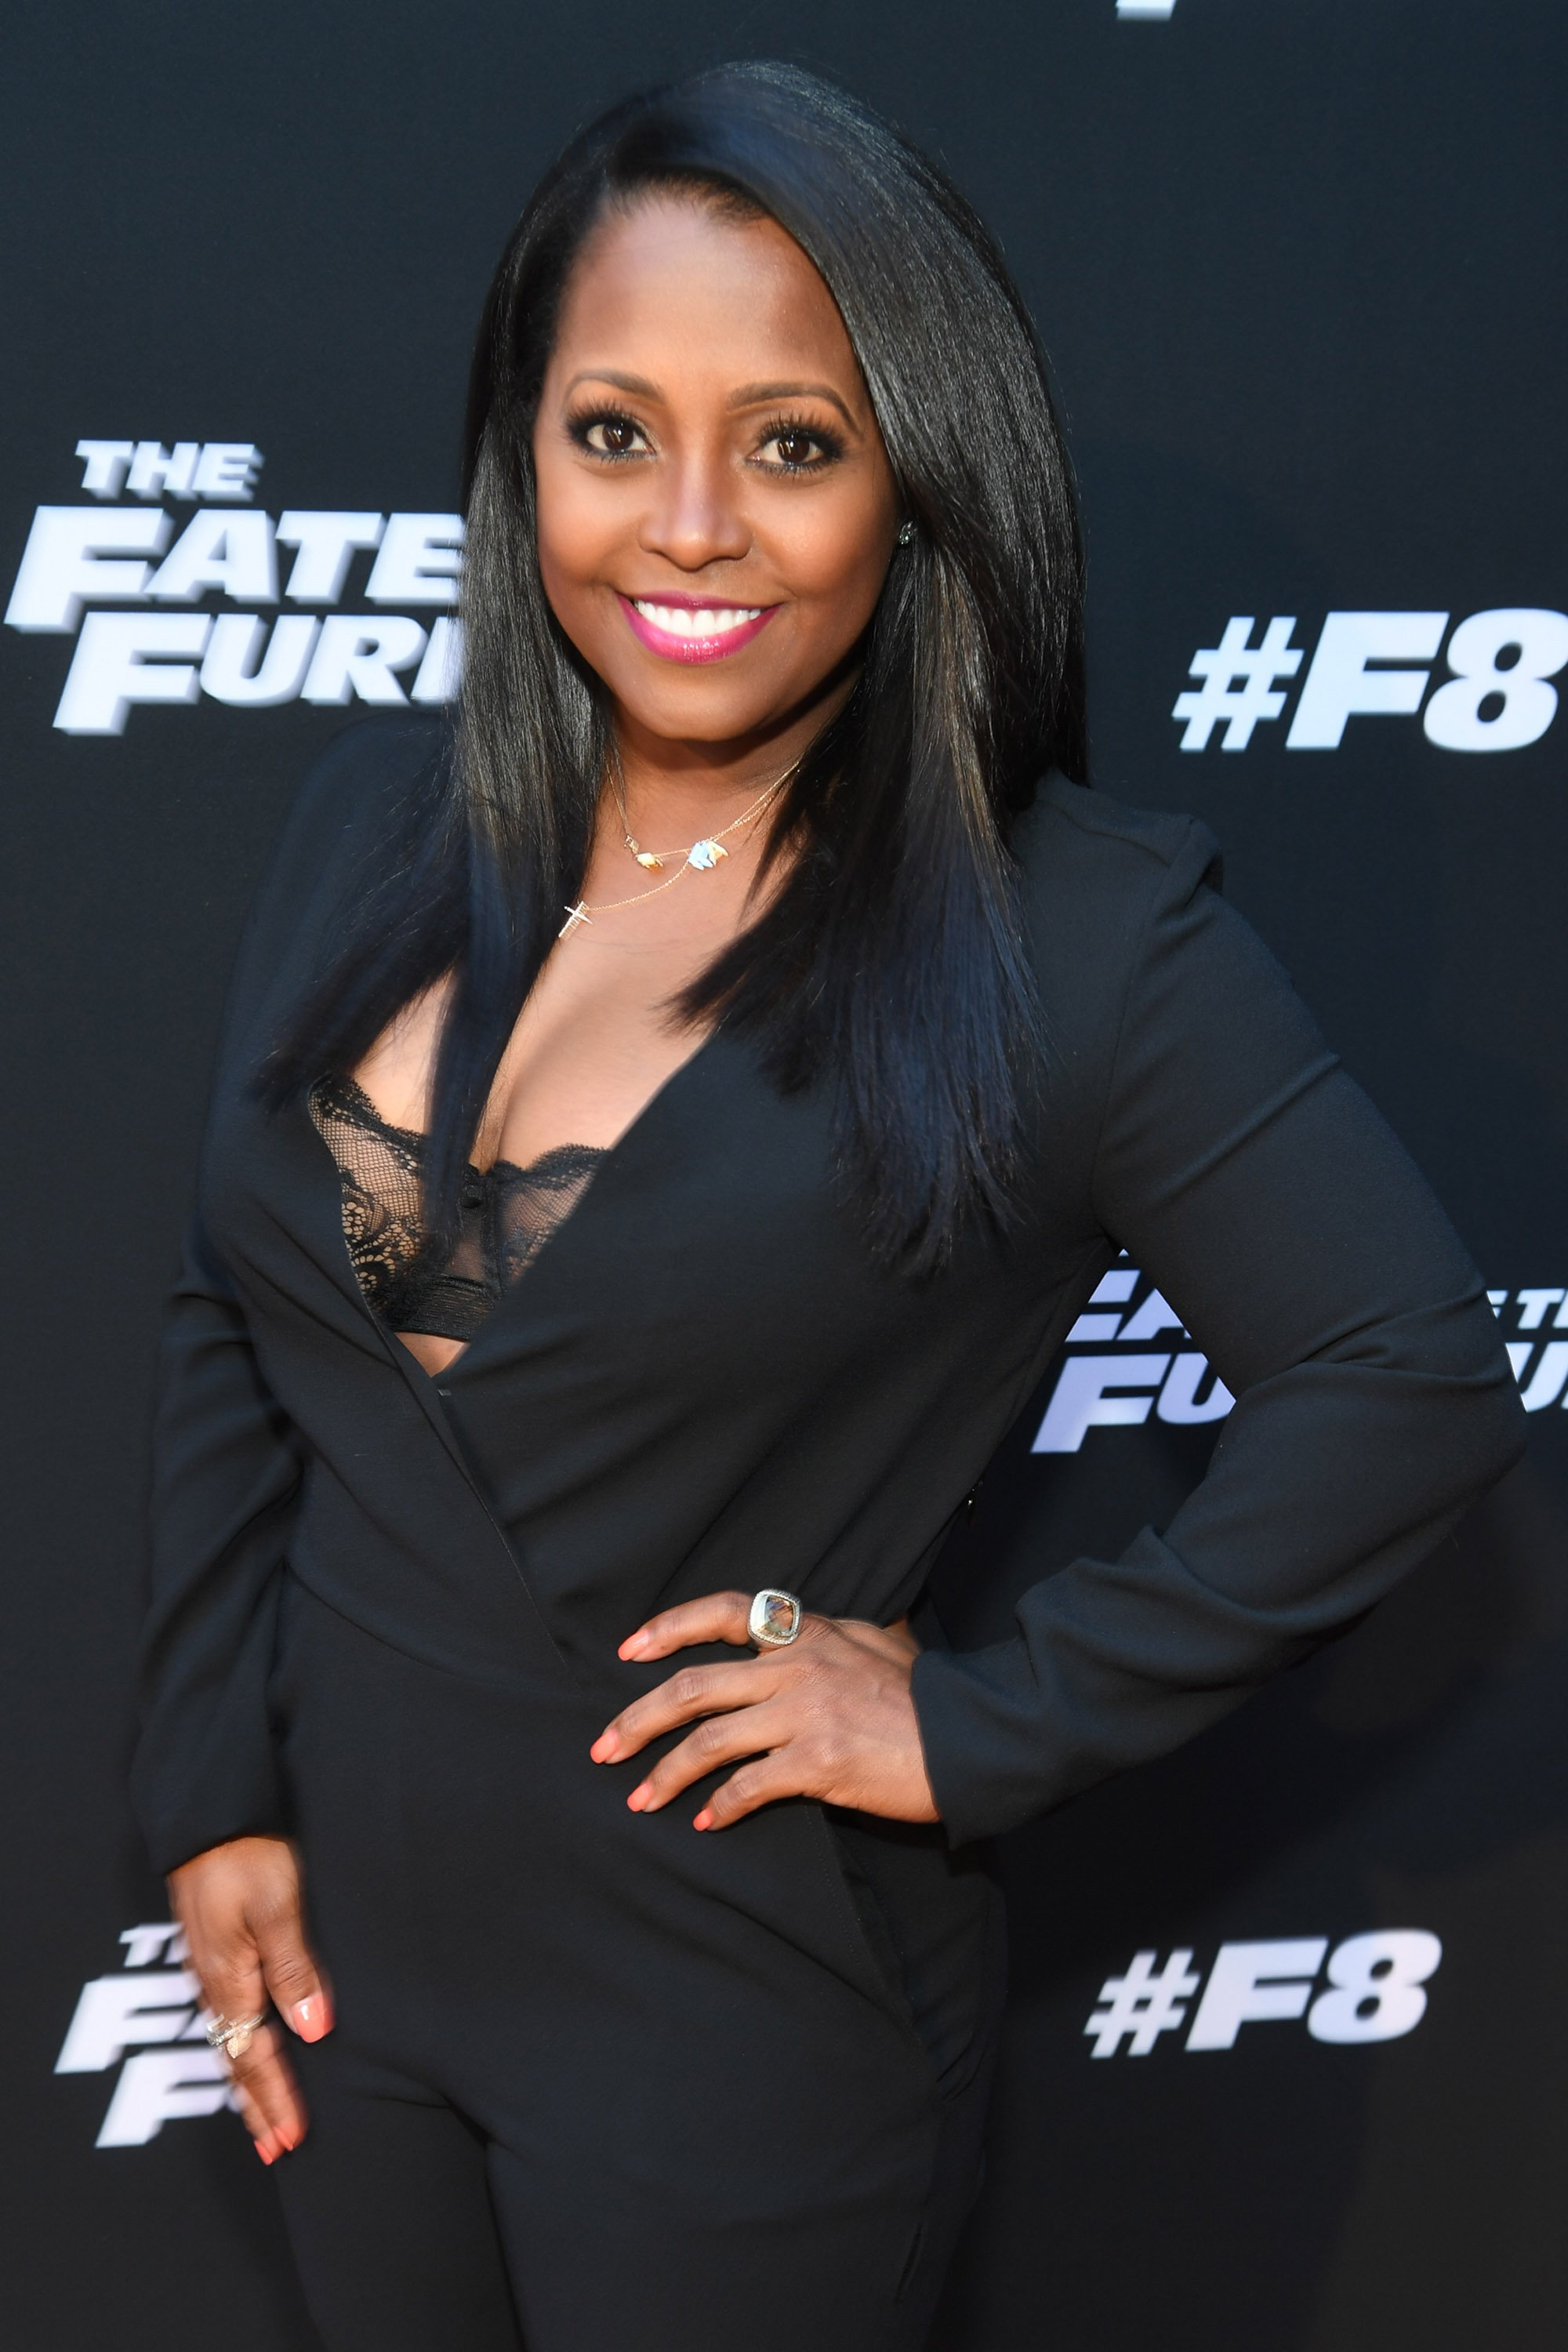 """Keshia Knight Pulliam at the red carpert screening of  """"The Fate of the Furious"""" at SCADshow on April 4, 2017, in Atlanta, Georgia.